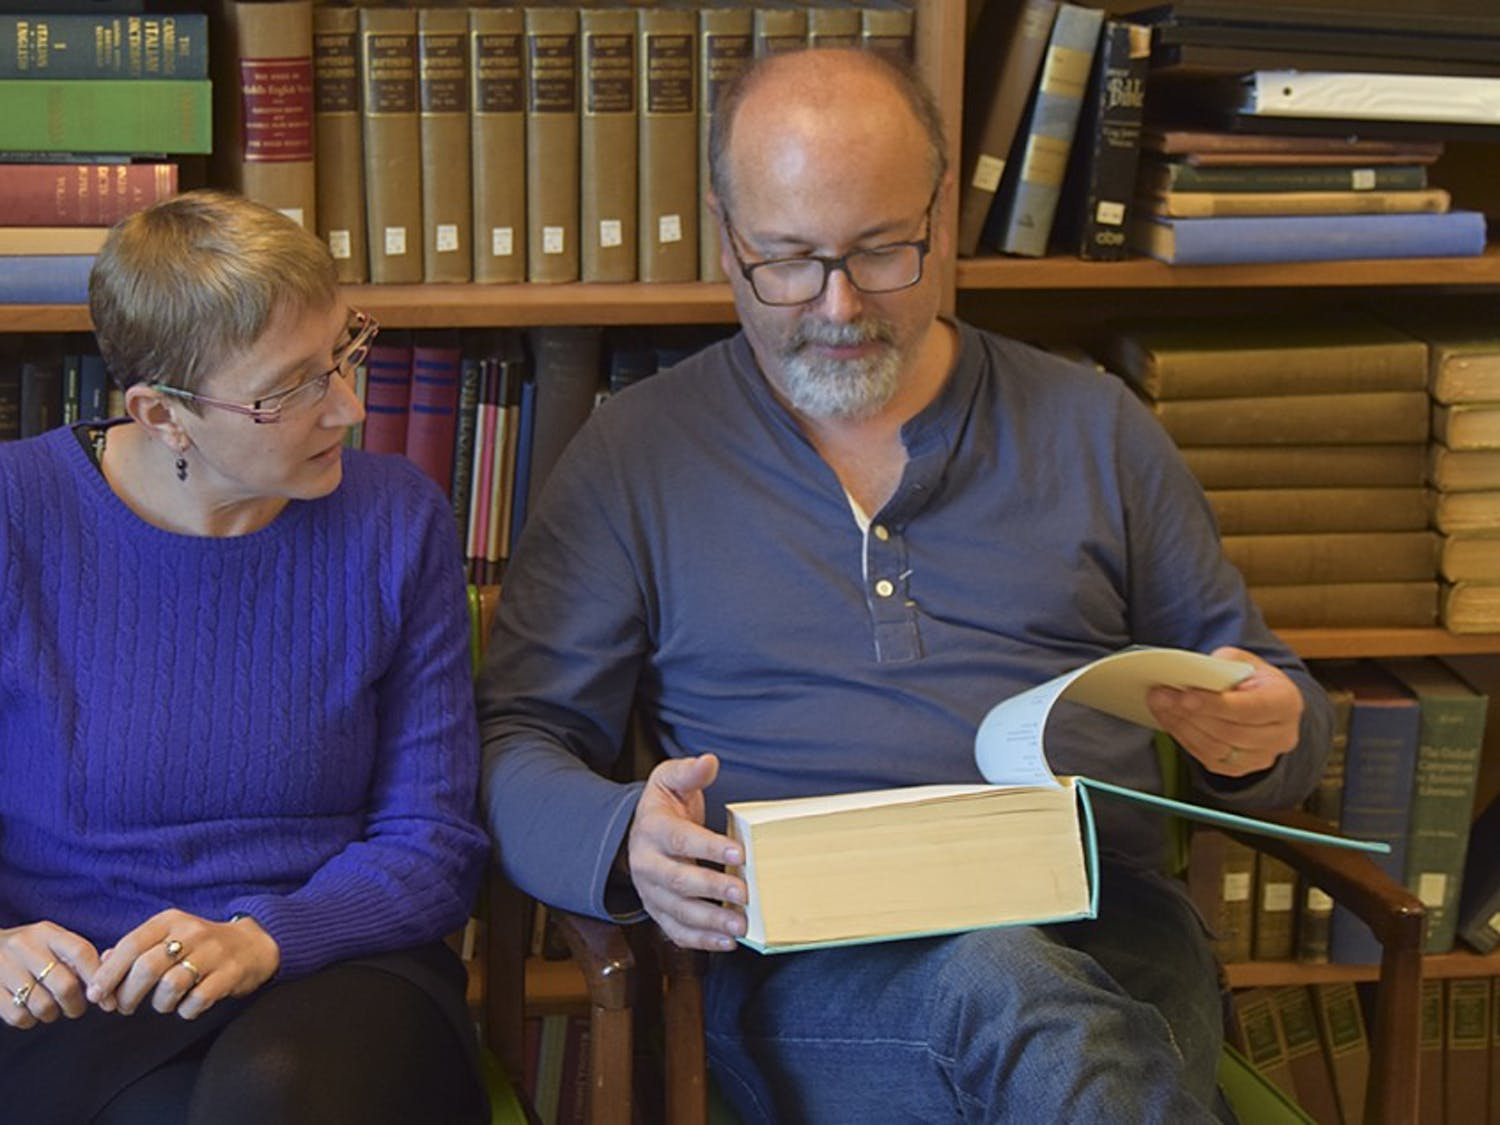 Jessica Wolfe (Director of Comparative Literature